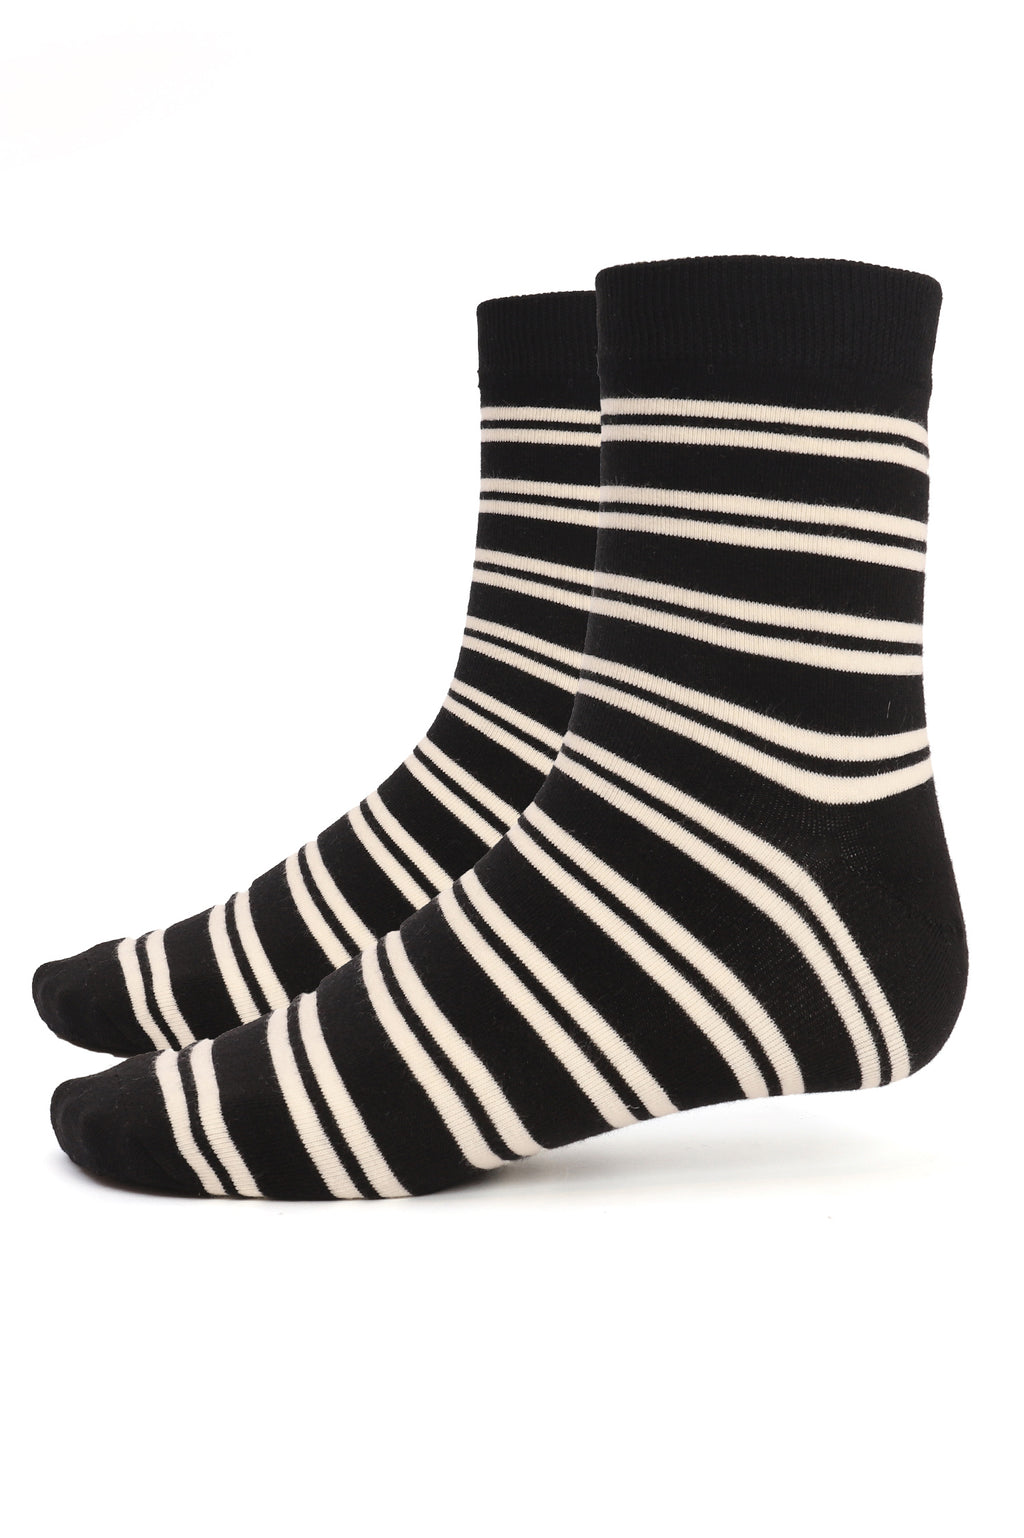 STRIPED SOCKS-BLACK-WHITE